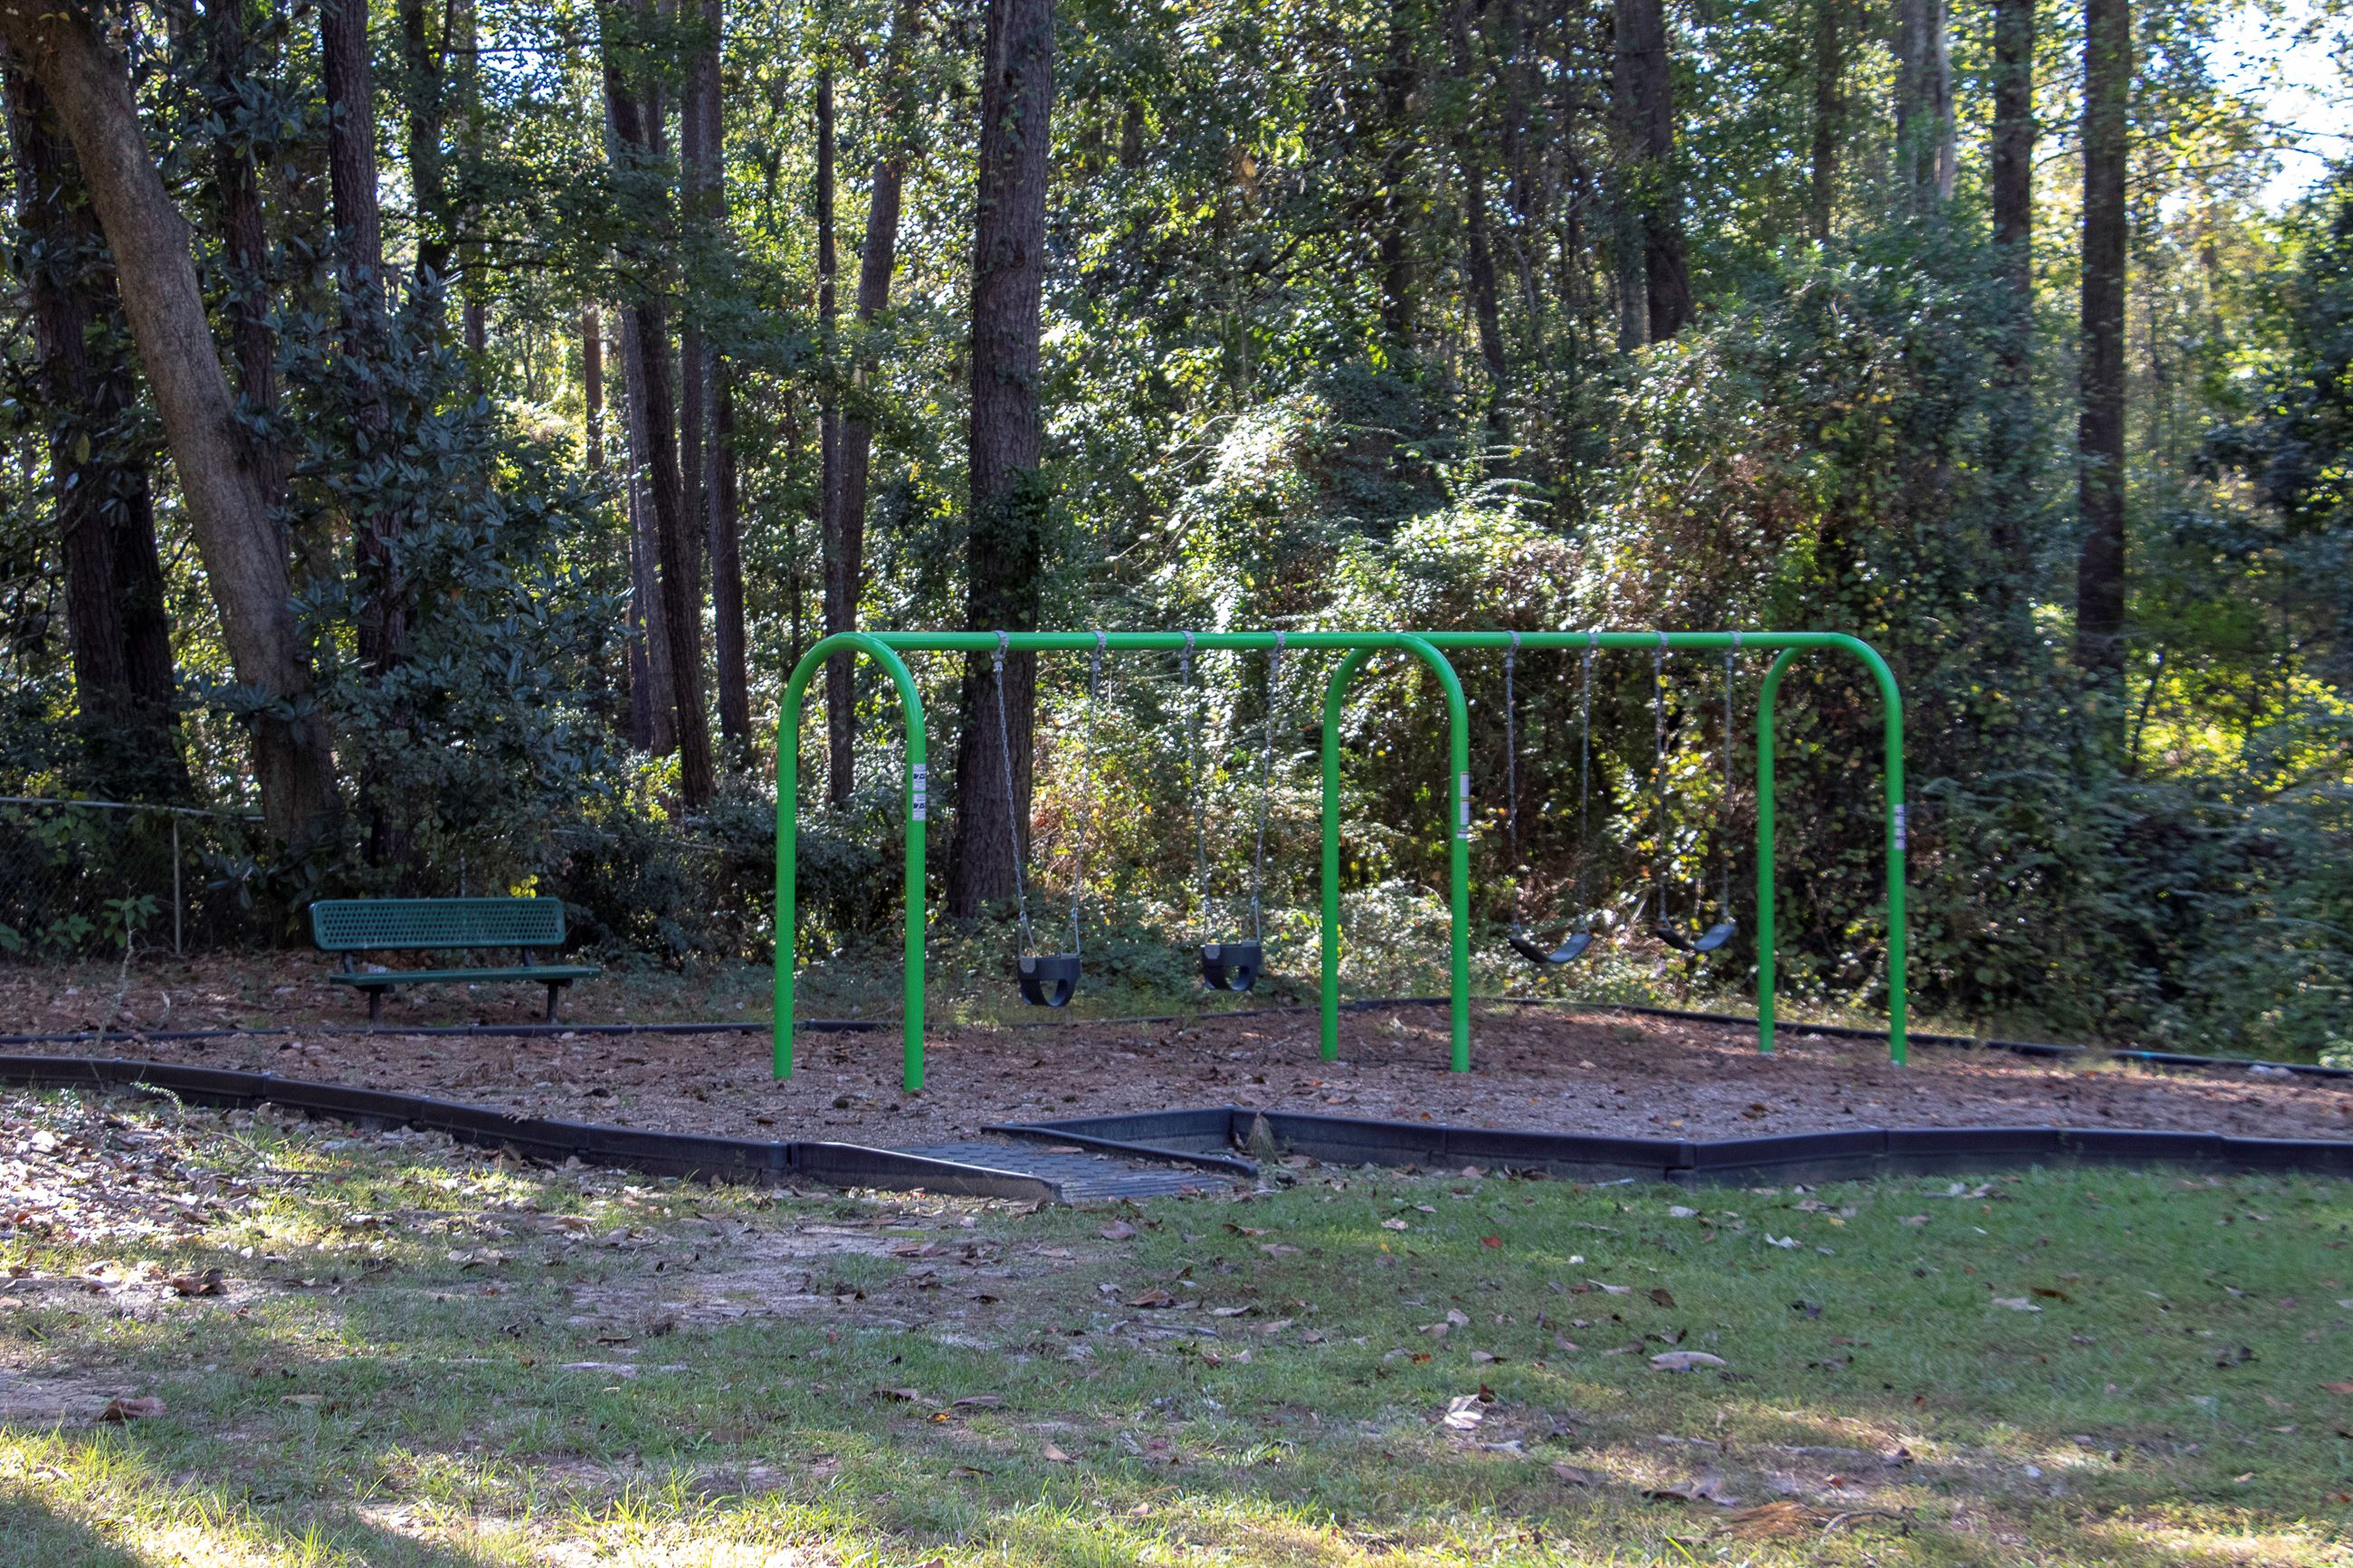 An image of swing sets in a shaded park.